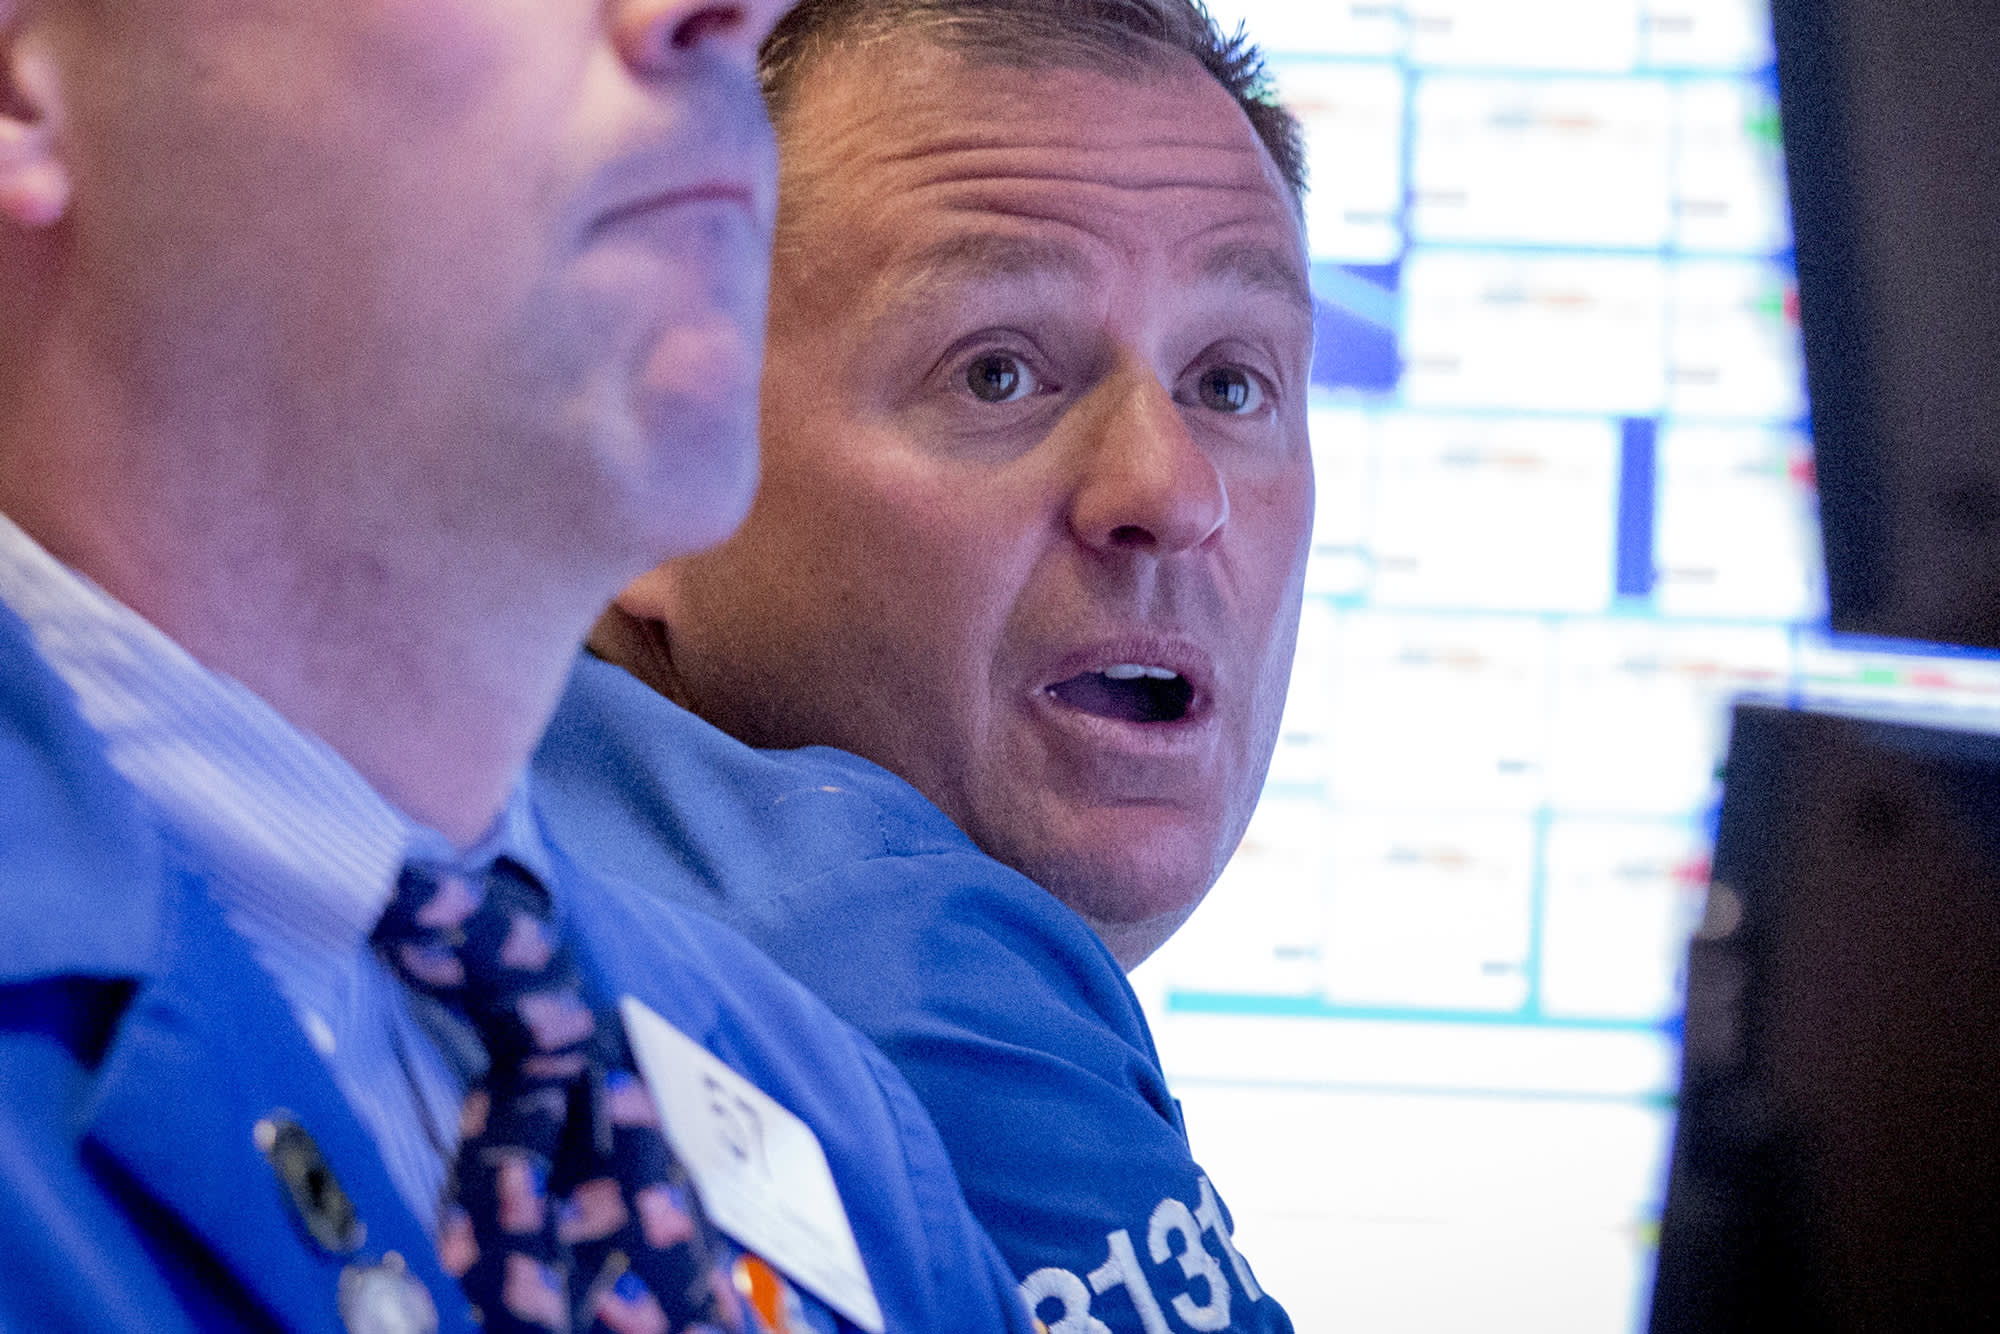 Stock performance study shows companies should take environmental and social factors seriously